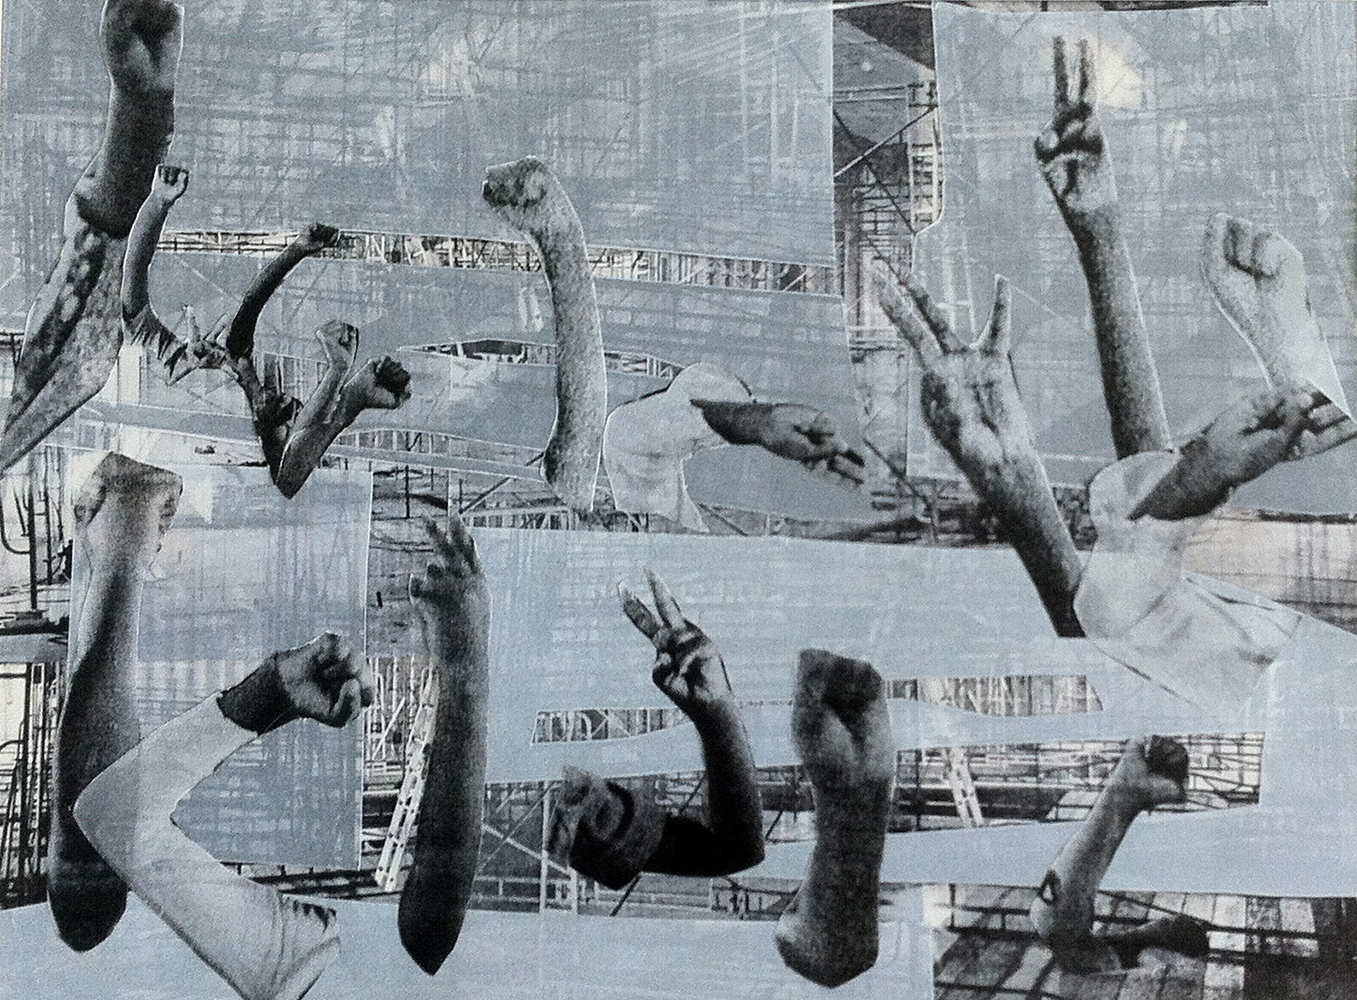 Regina Agu  Support , 2014 Laser print and collage on vellum 16 x 12 inches Courtesy of the artist Retail value $1,200